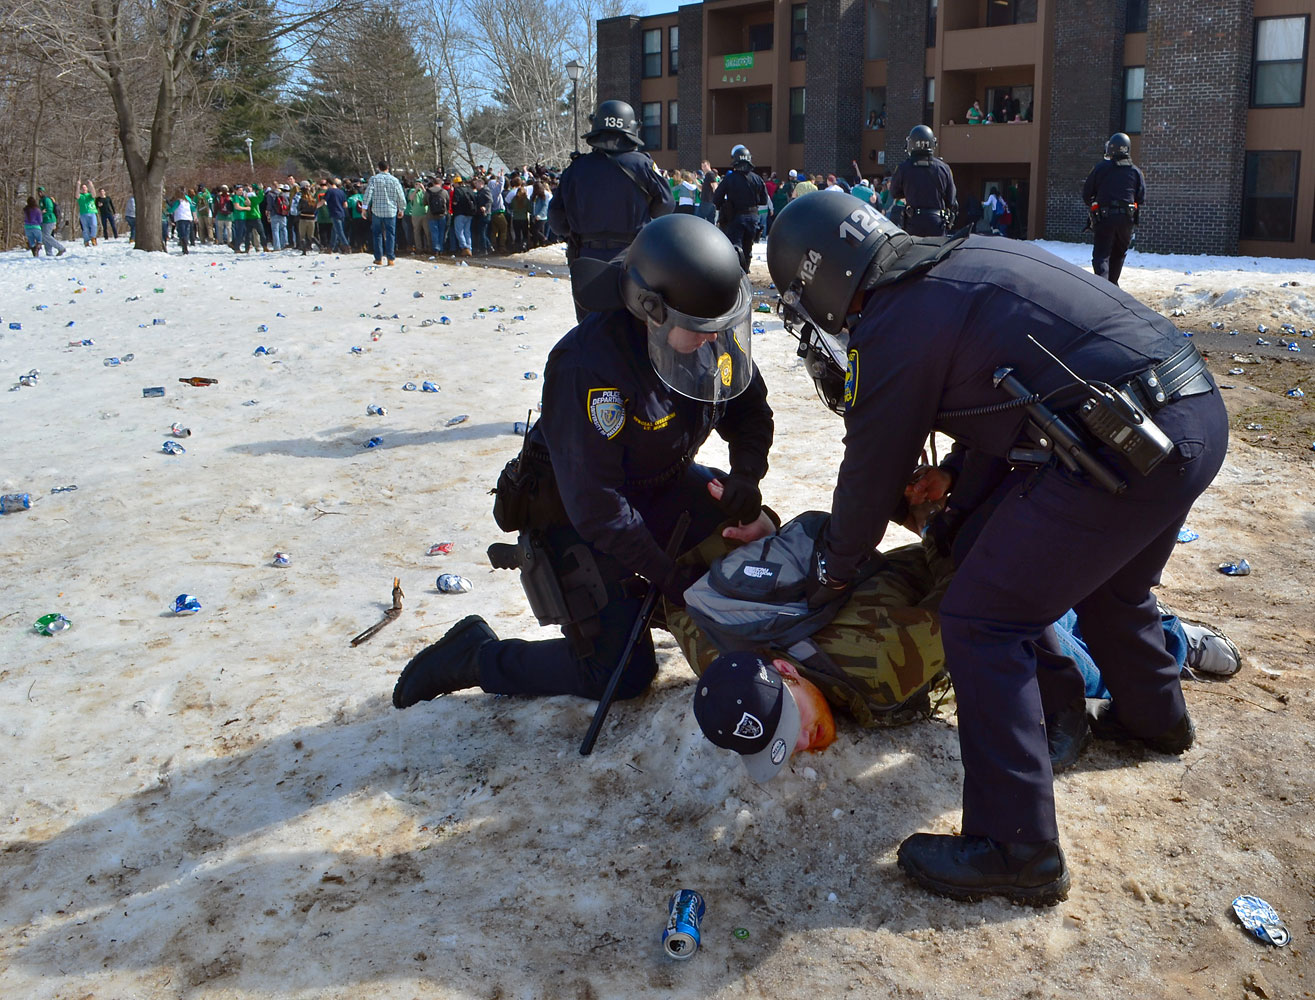 Police detain a participant in the pre-St. Patrick's Day  Blarney Blowout  near the University of Massachusetts in Amherst, Mass. March 8, 2014.